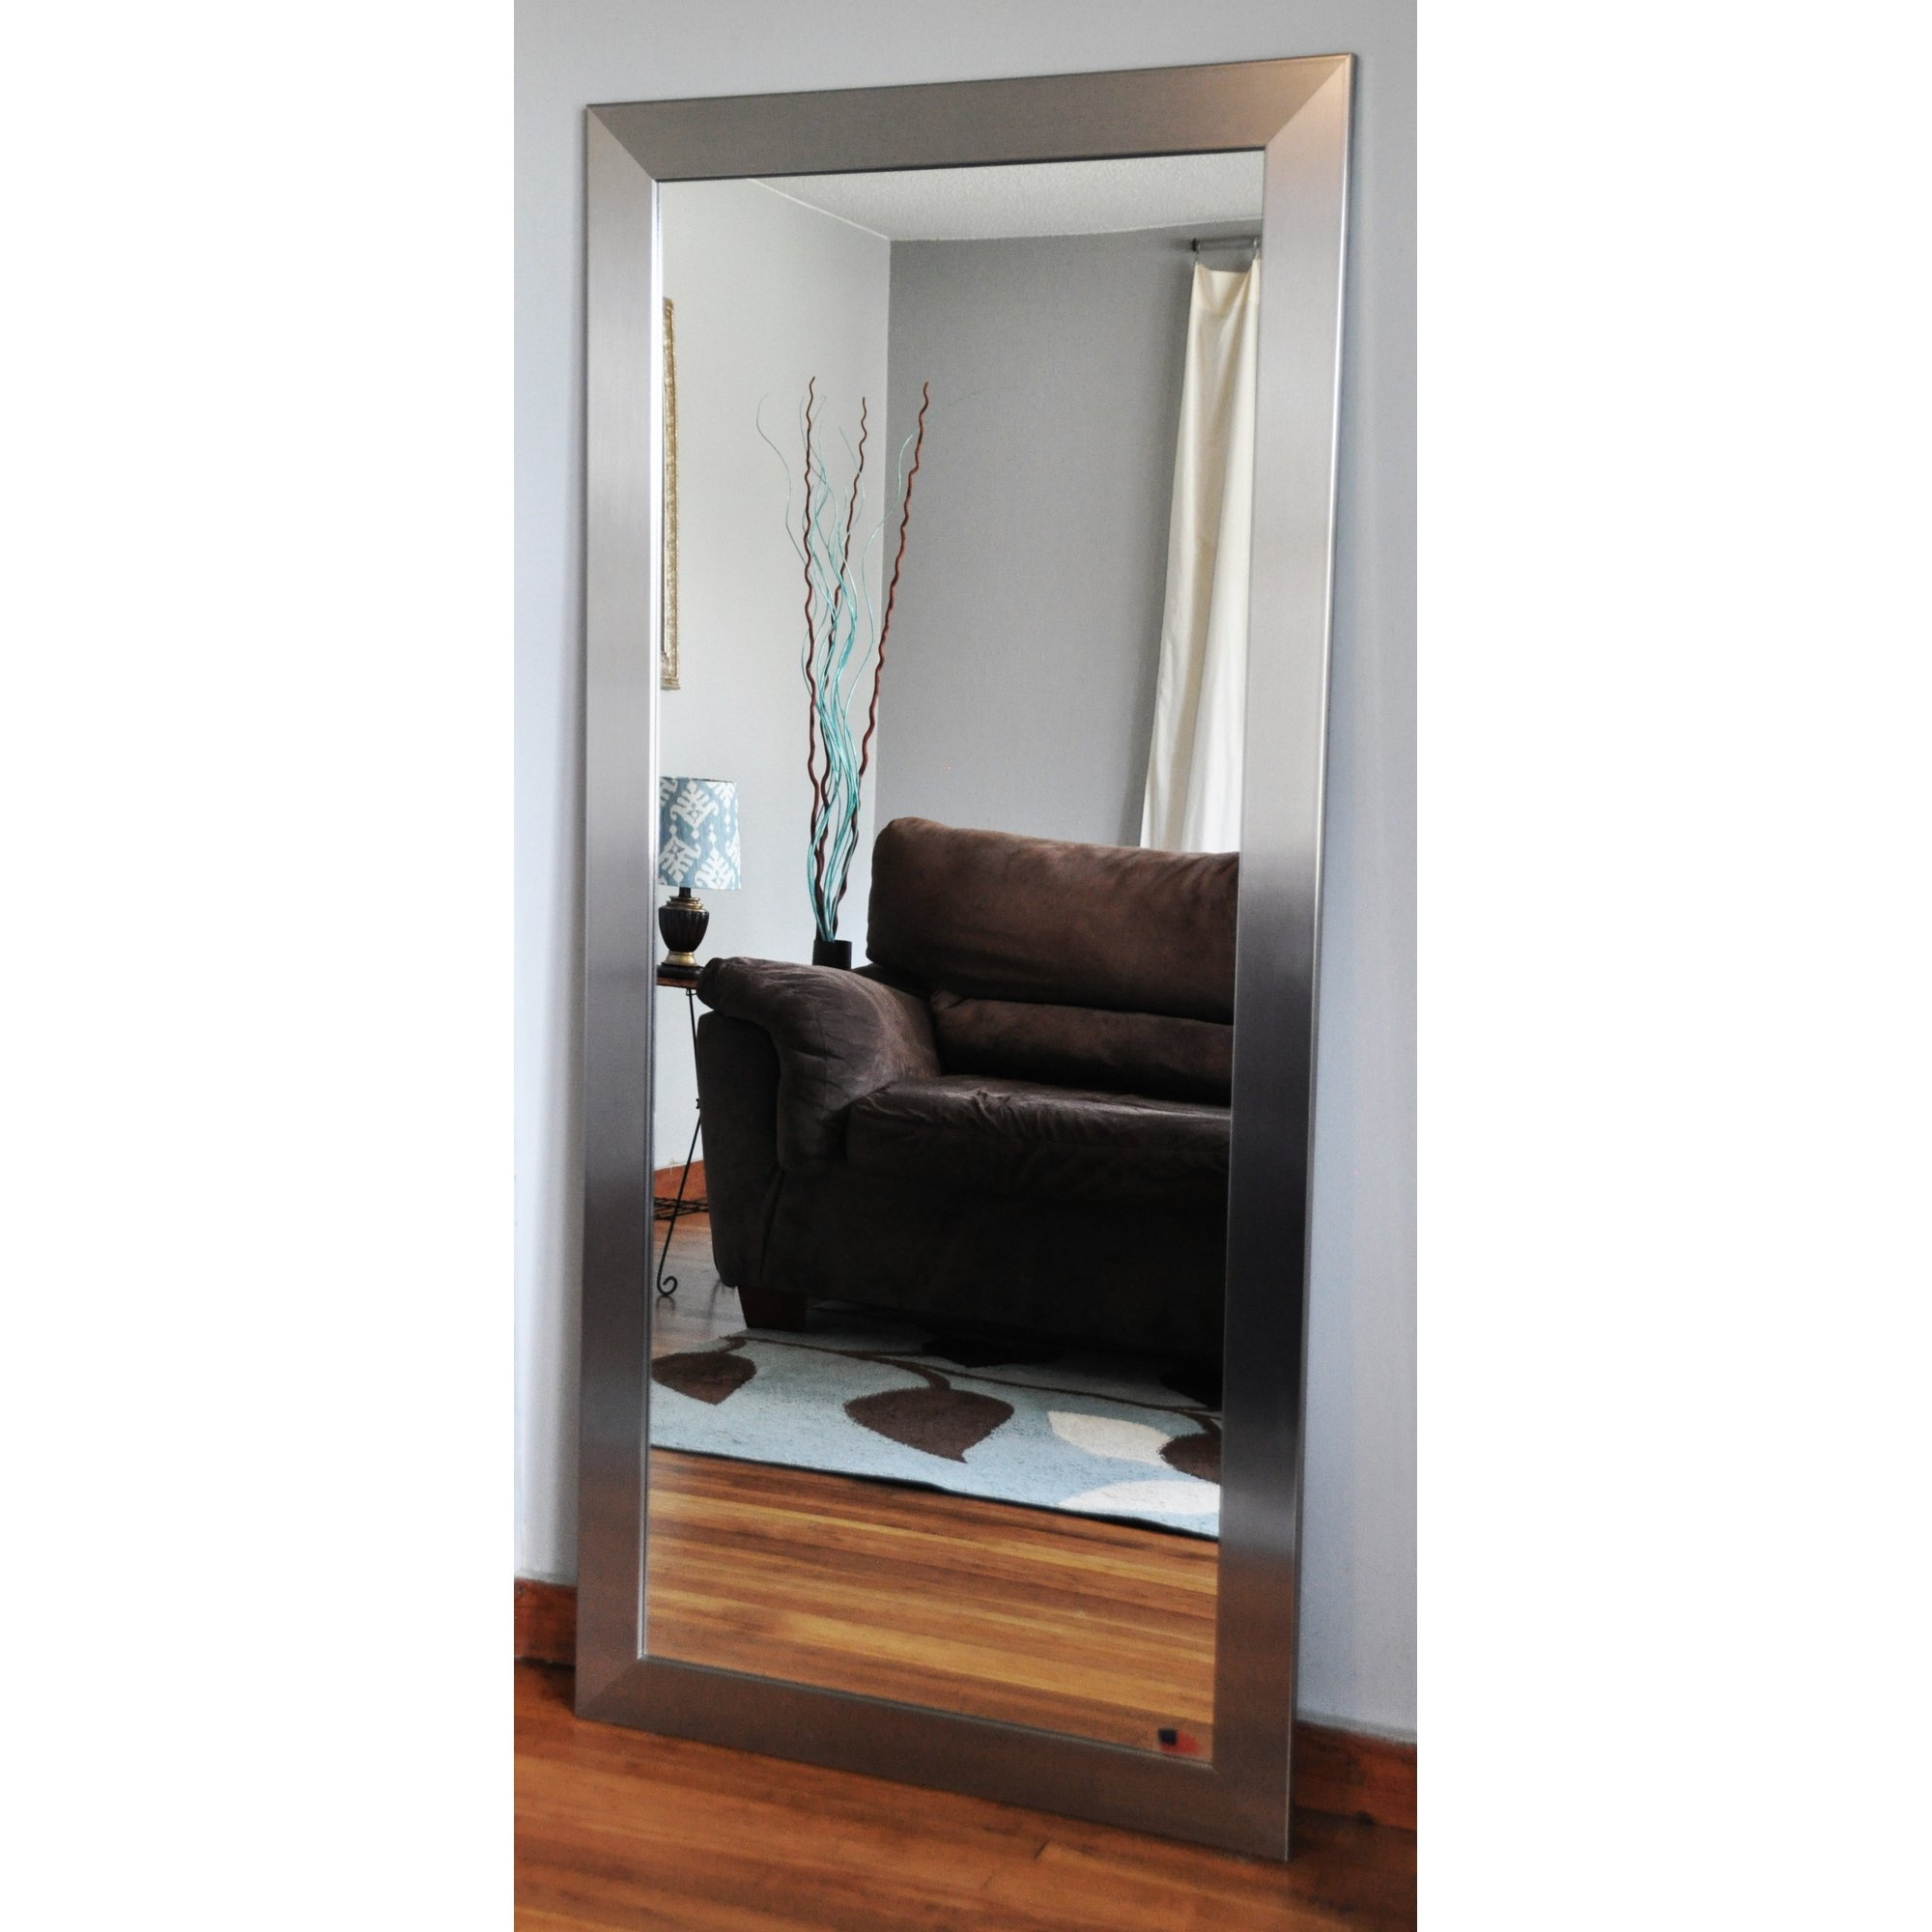 Latitude Run Wide Tall Mirror Reviews Wayfair With Tall Ornate Mirror (Image 9 of 15)